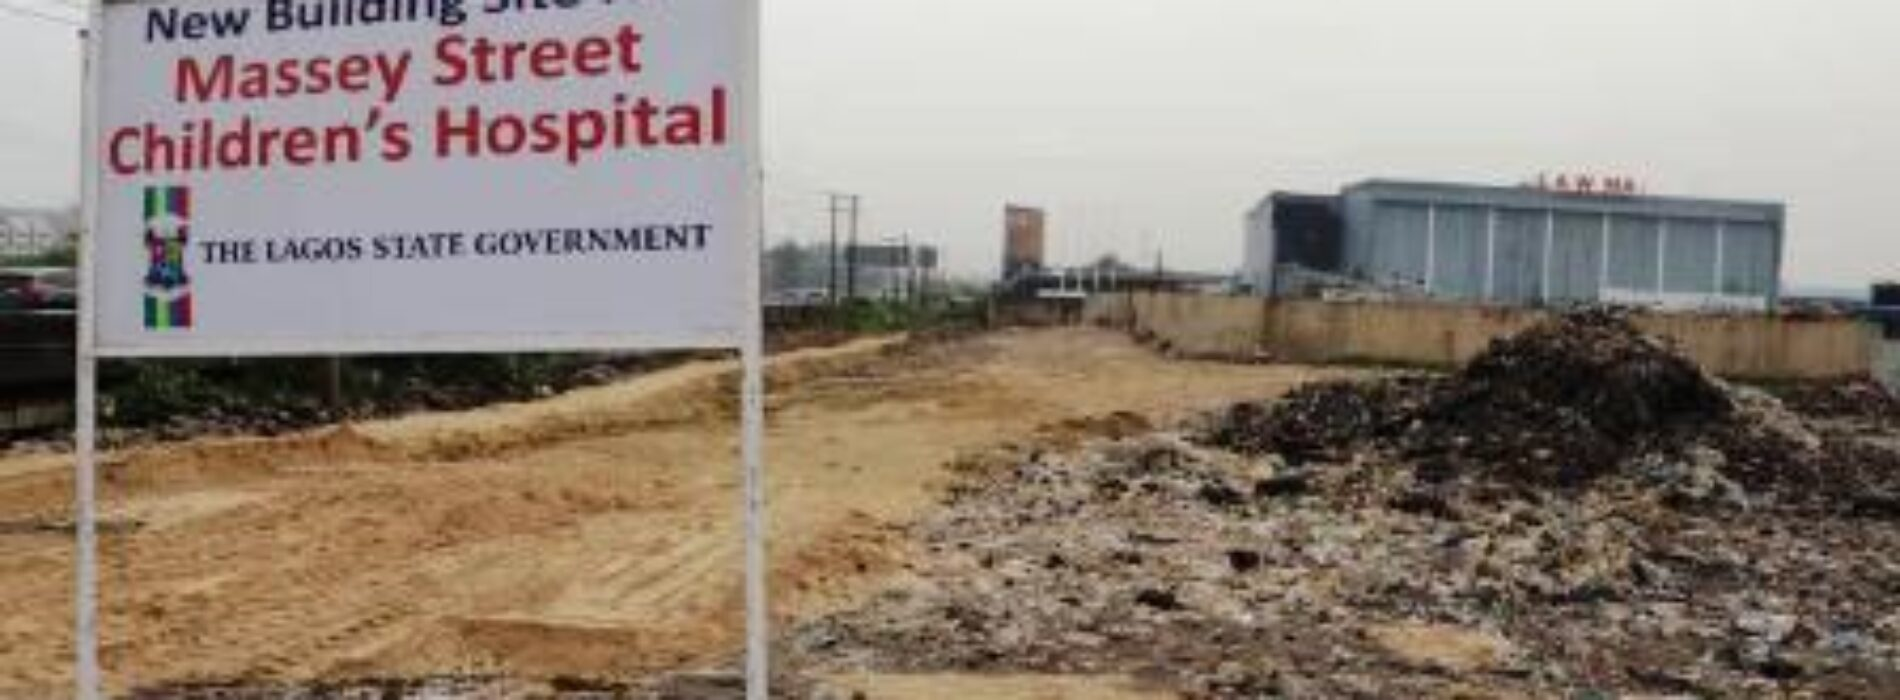 Lagos begins construction of new Massey Street Children's Hospital